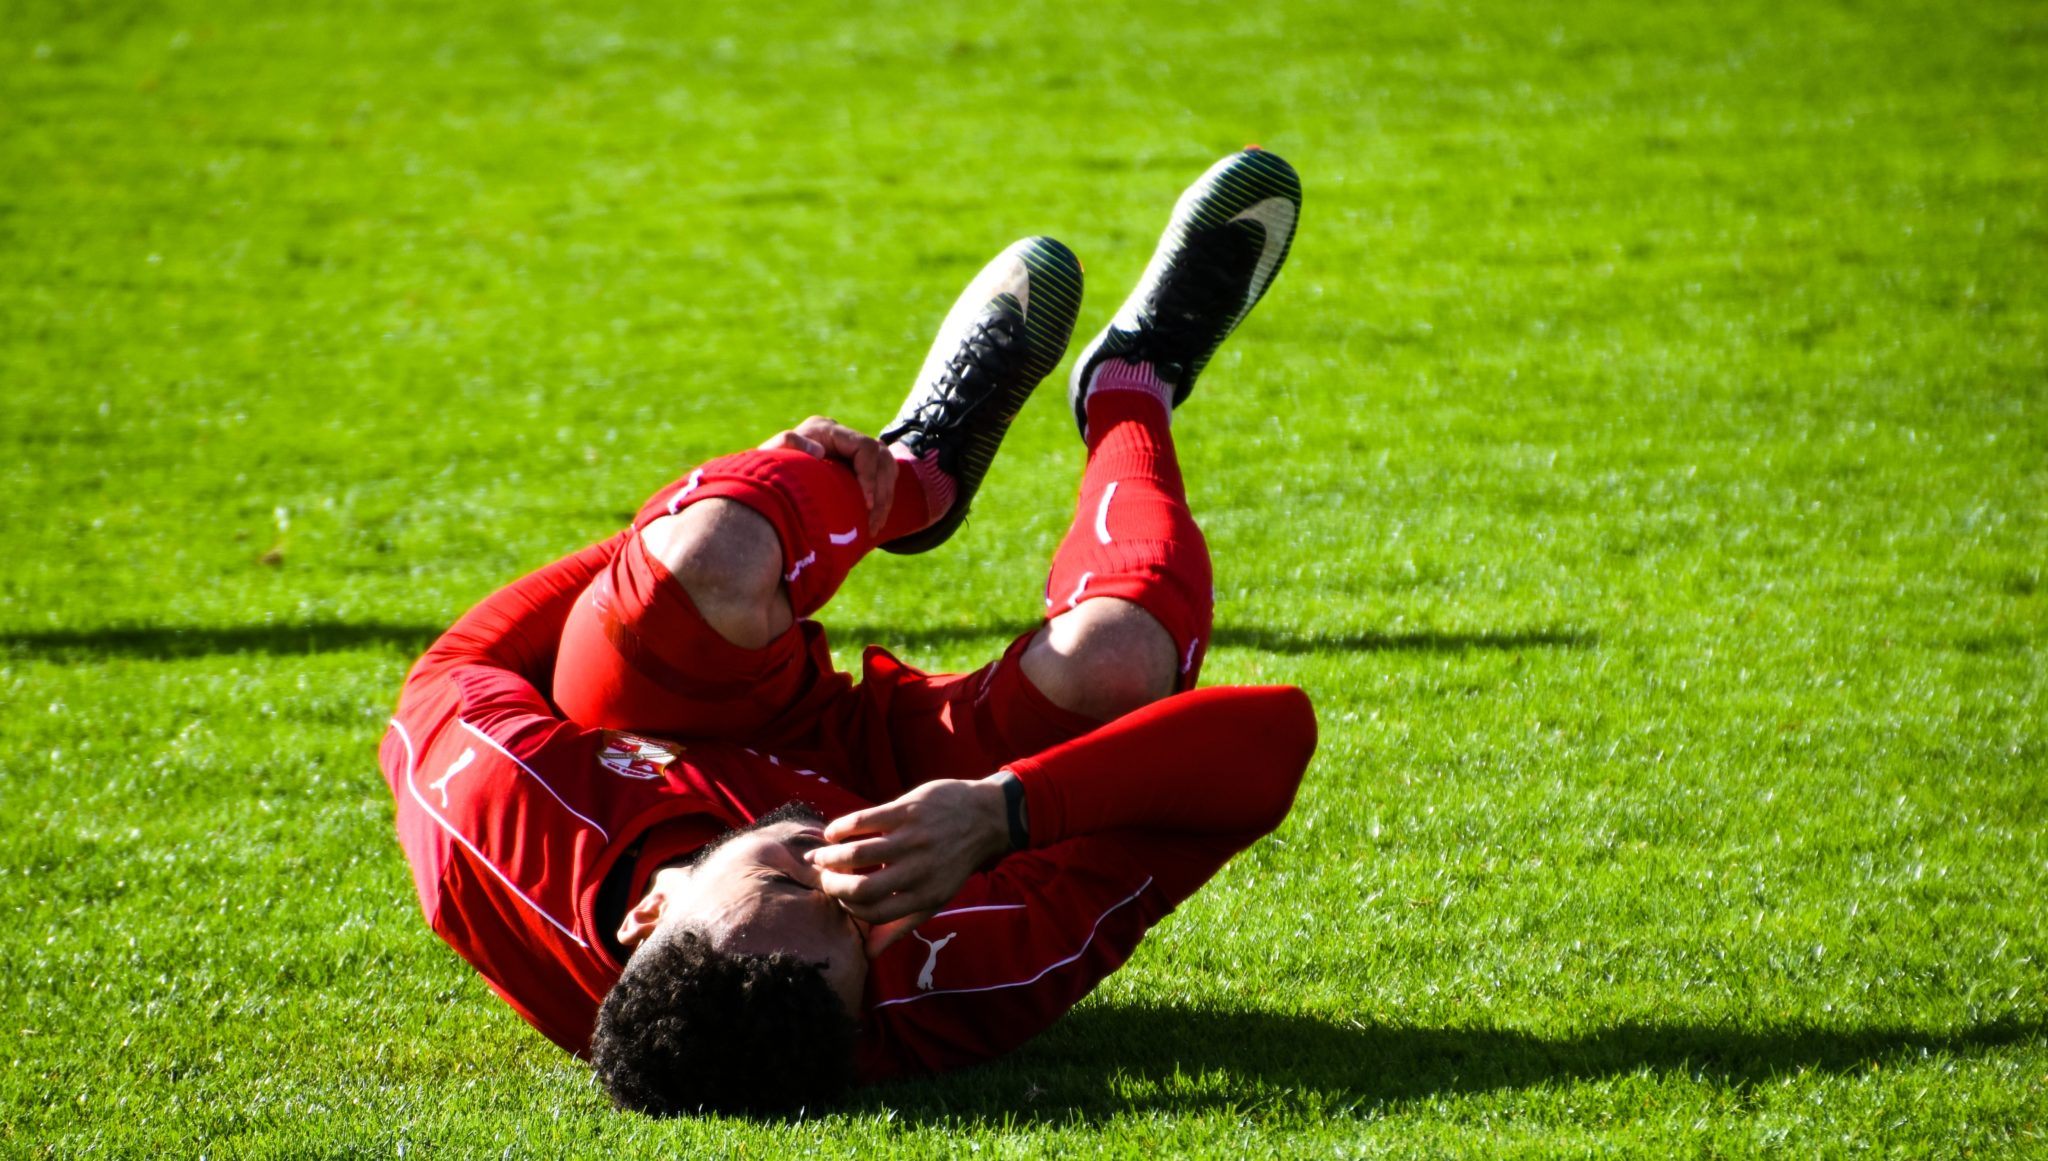 adult athlete cramps 460550